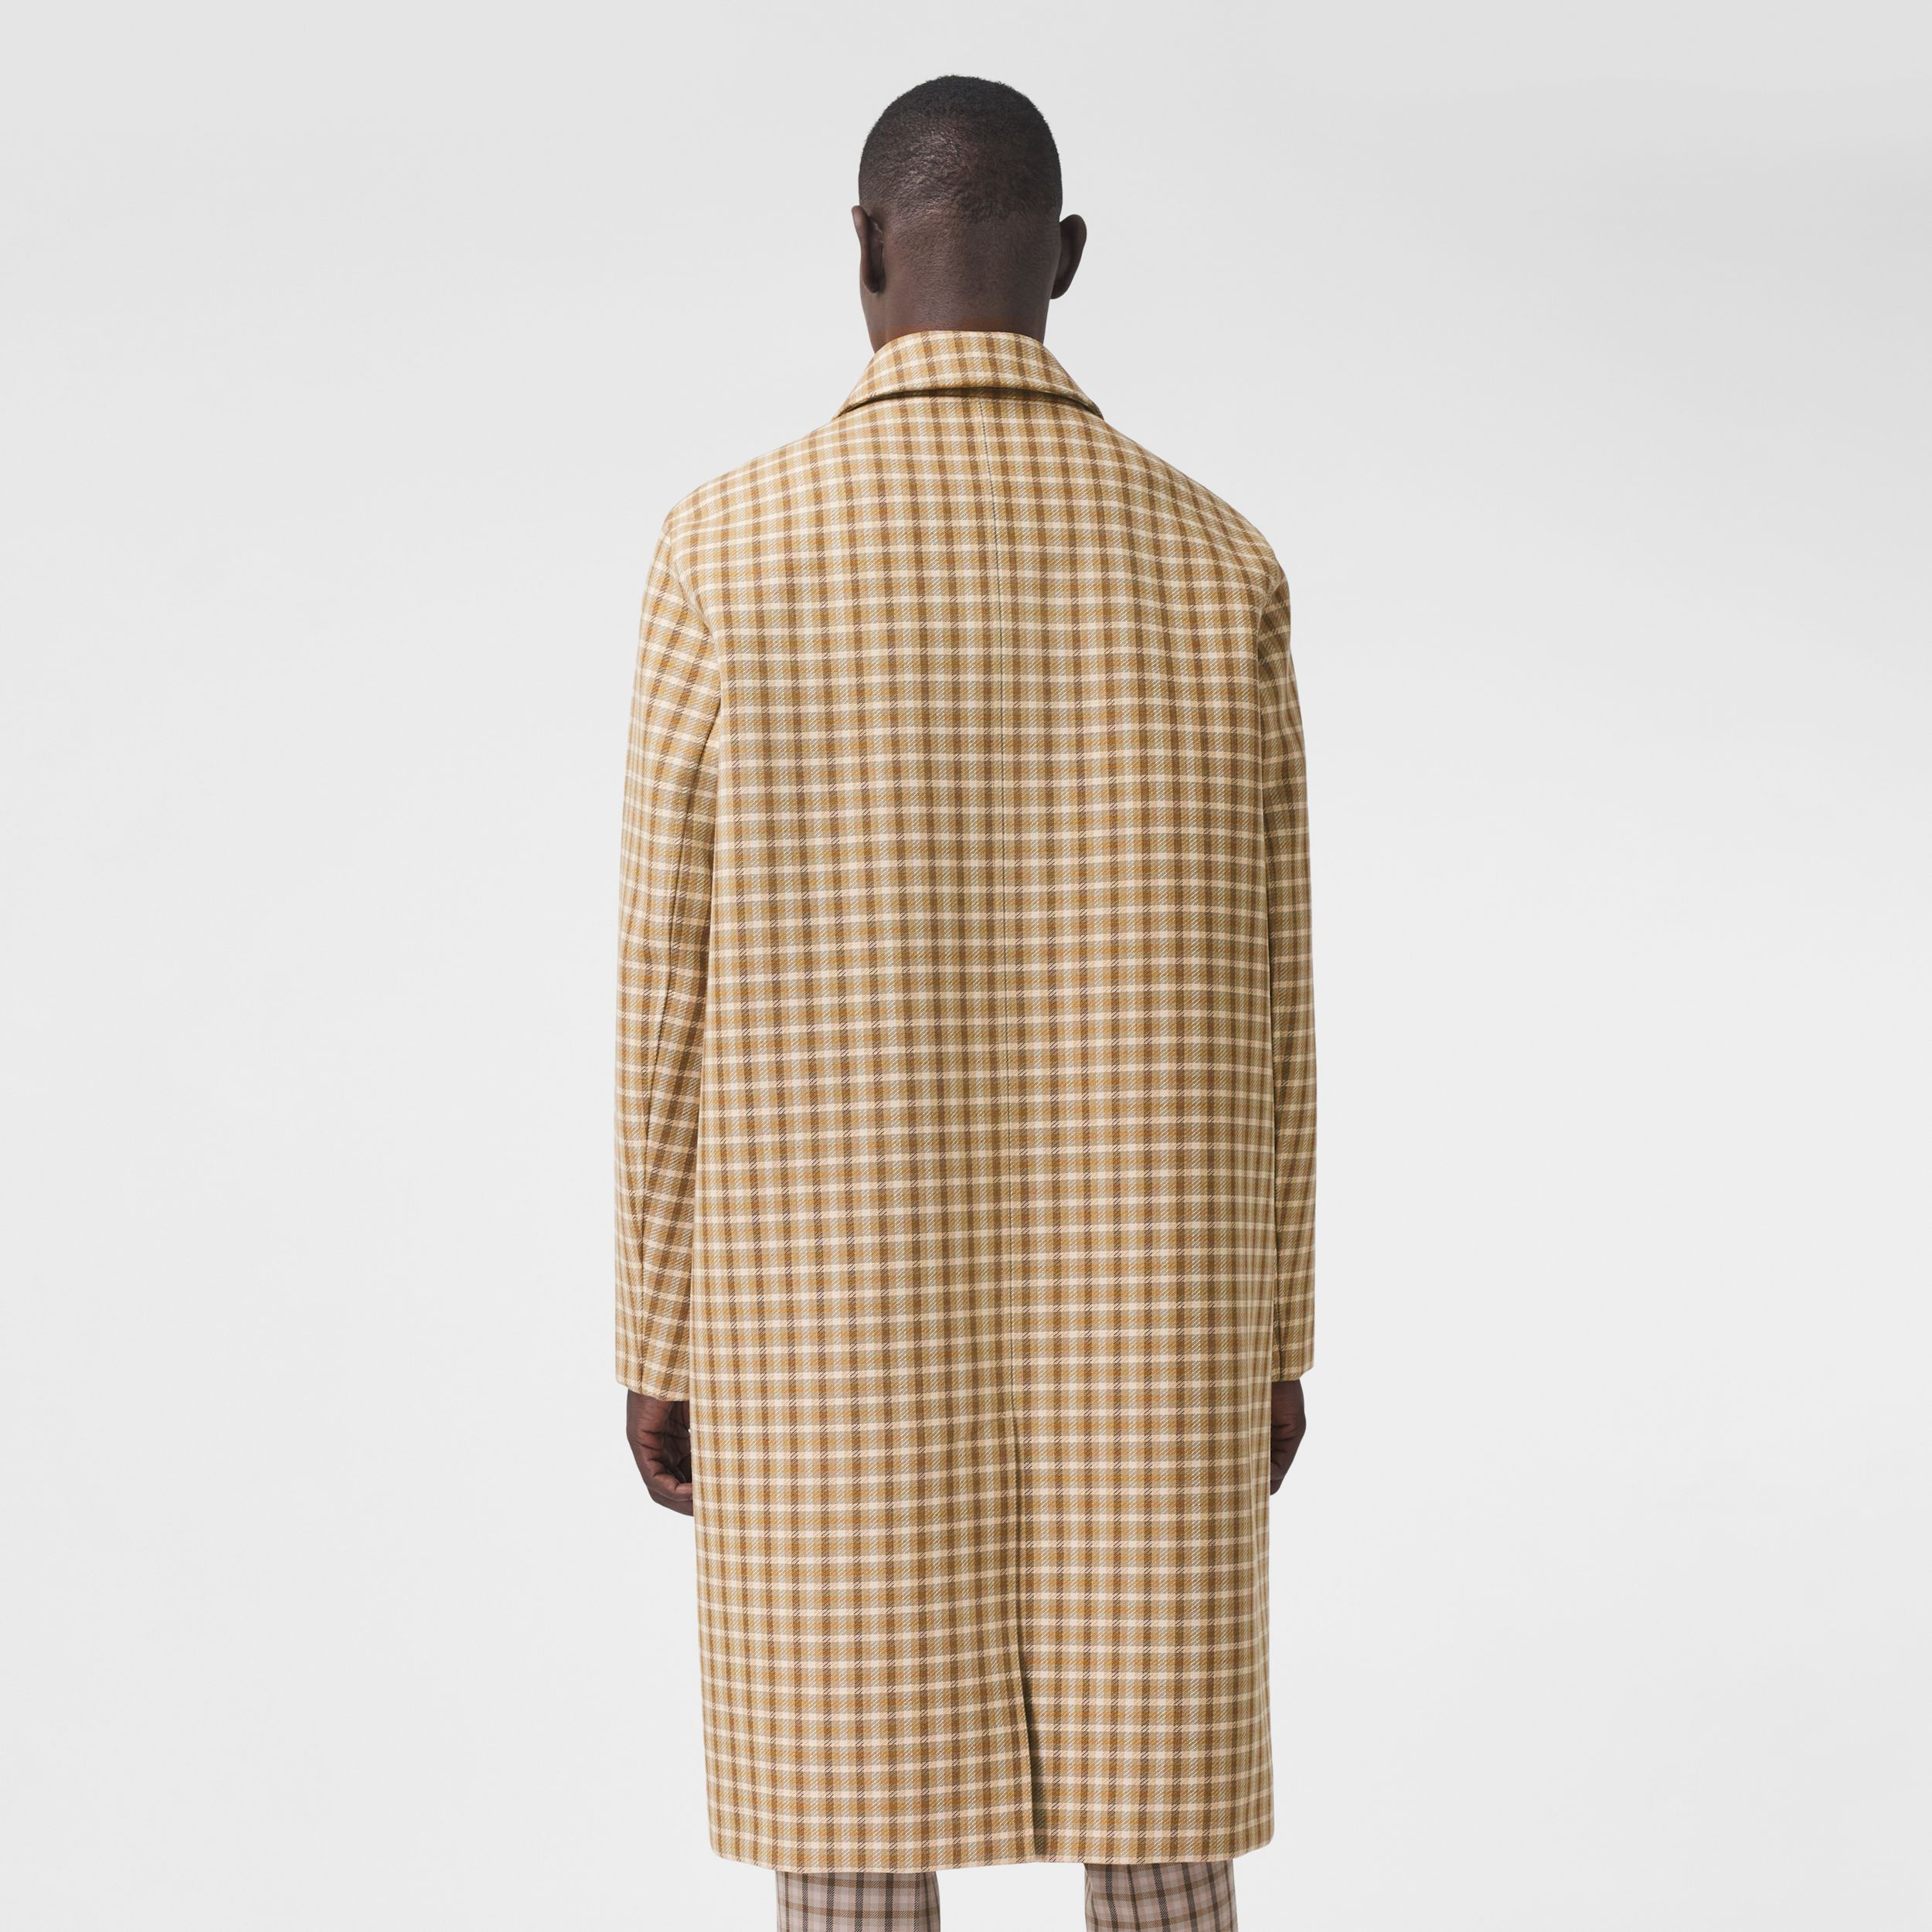 Varsity Graphic Check Bonded Cotton Car Coat in Soft Fawn - Men | Burberry - 3